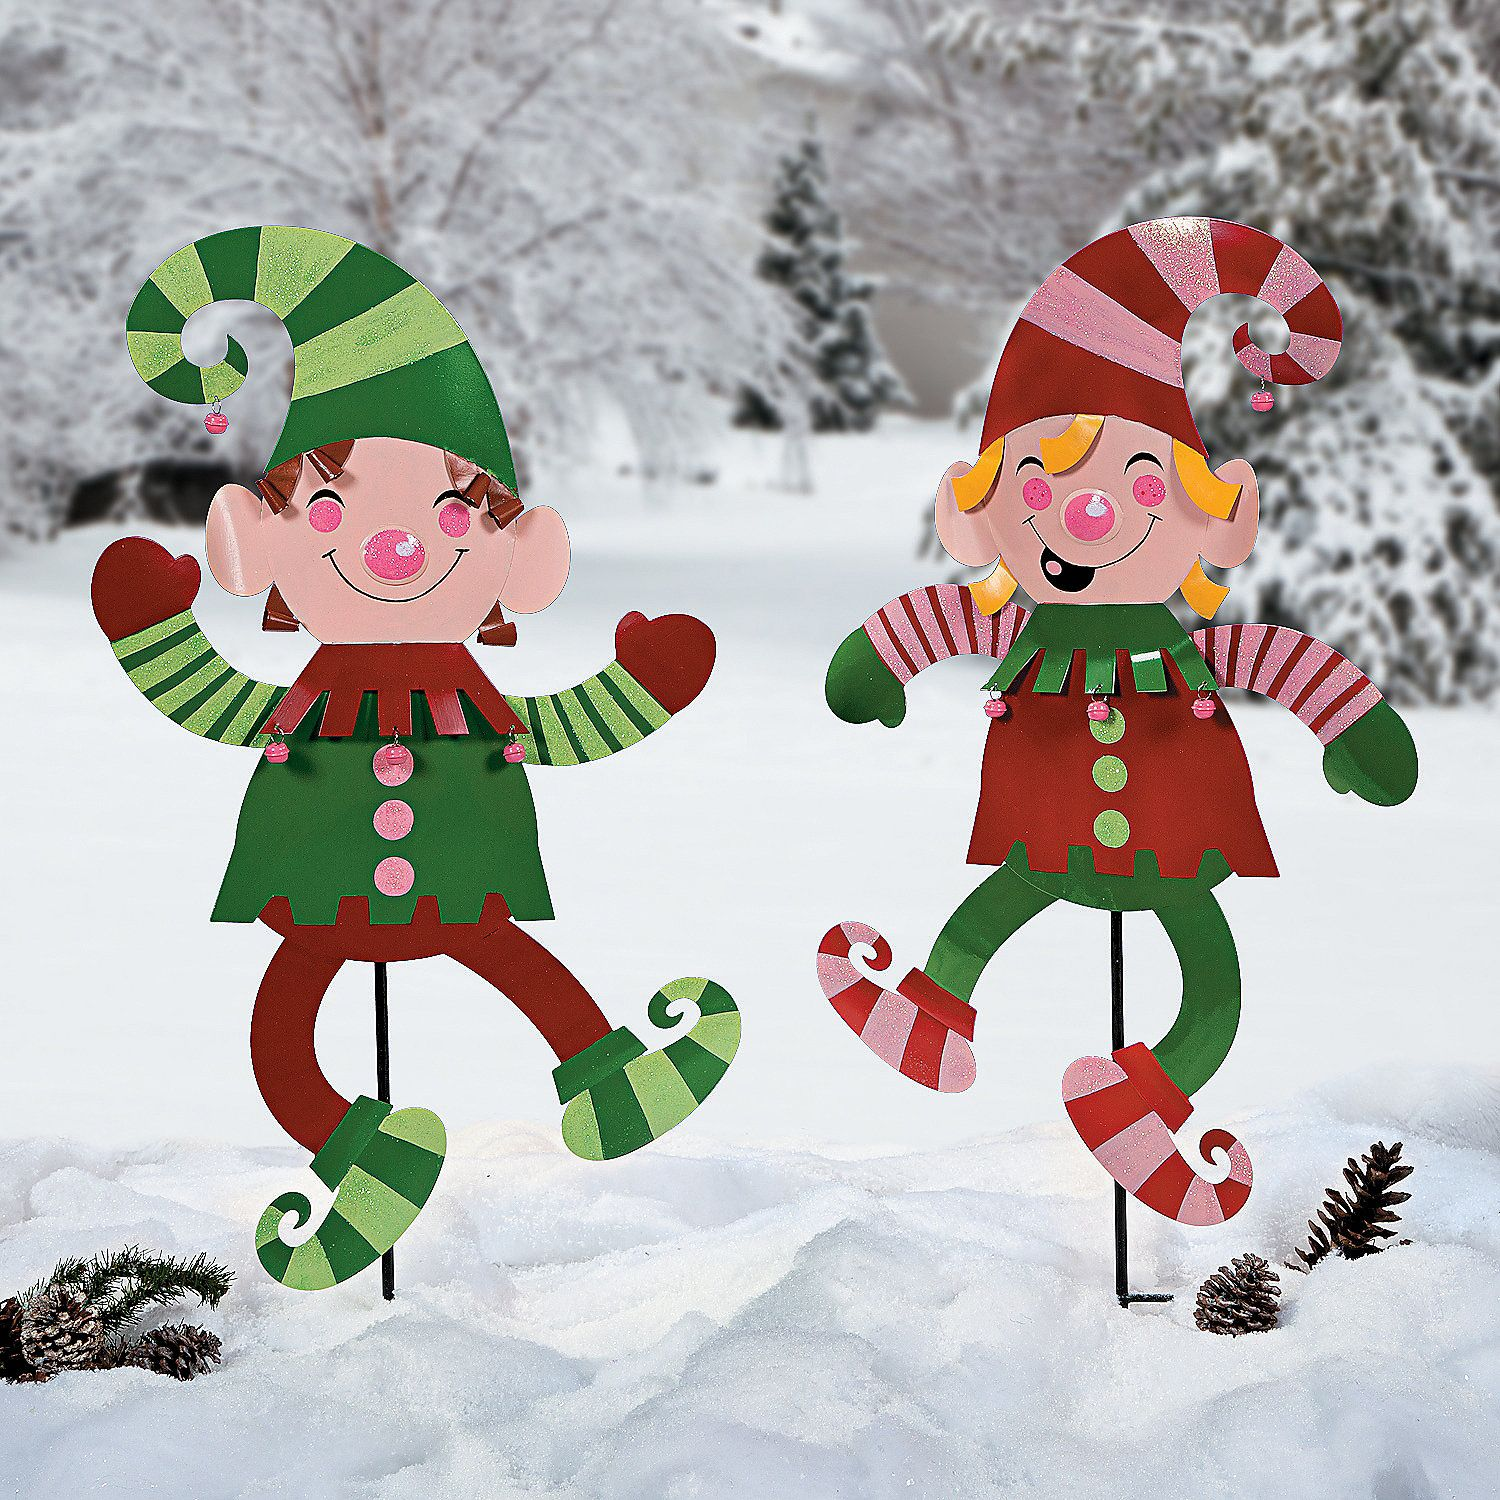 Elf Yard Stakes Orientaltrading Com Christmas Yard Art Elf Christmas Decorations Christmas Yard Decorations